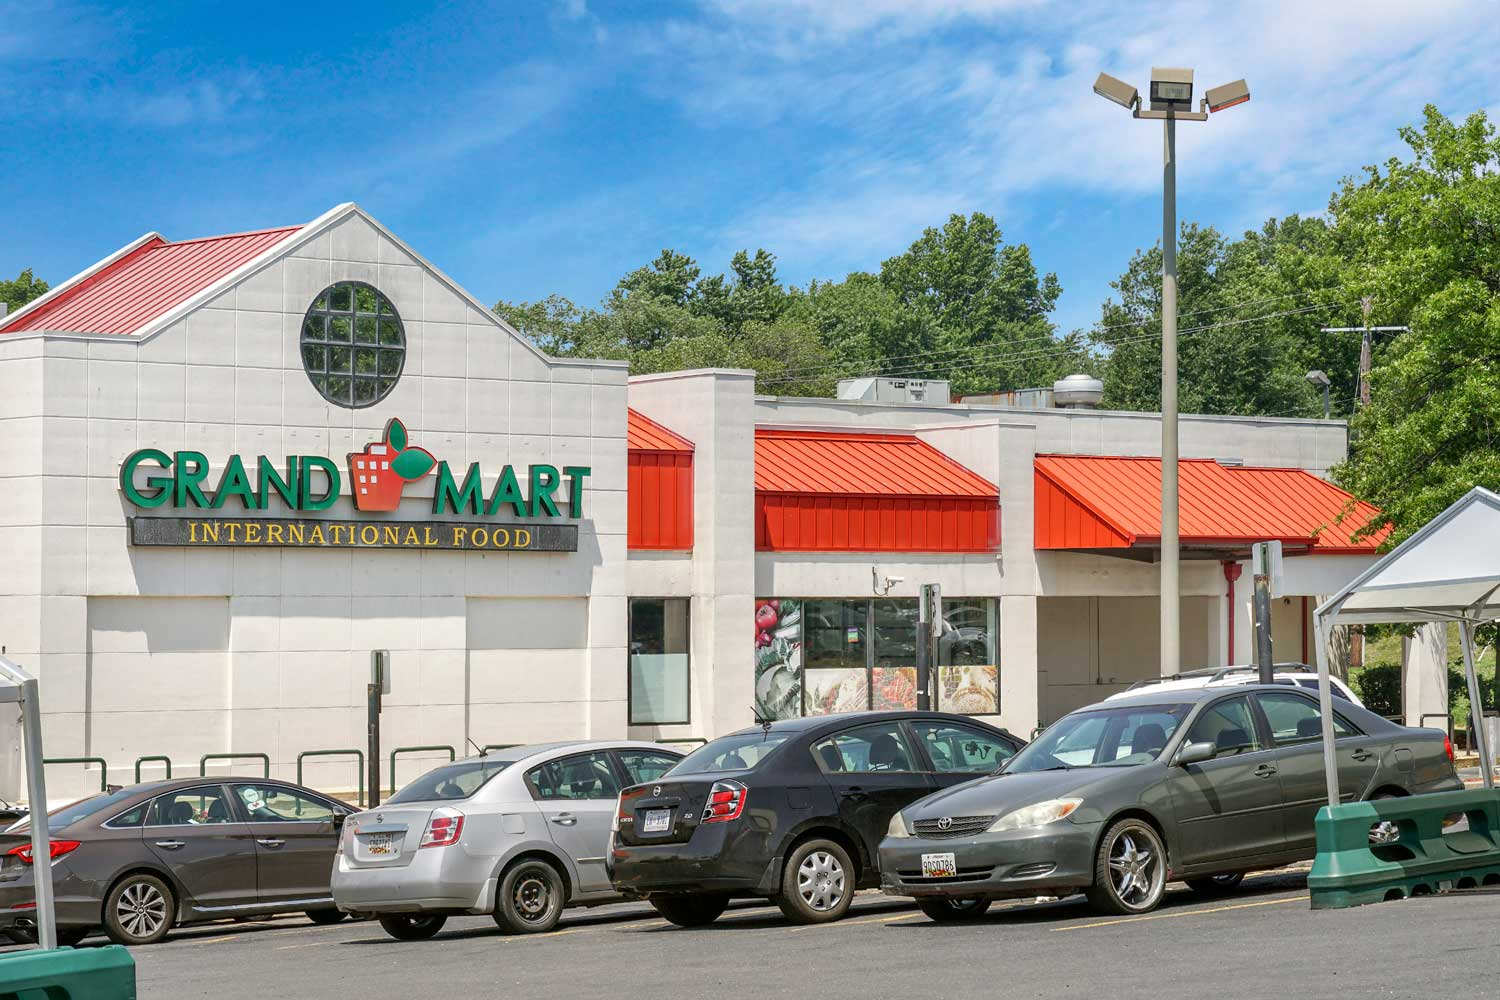 10 minutes to Grand Mart International Food